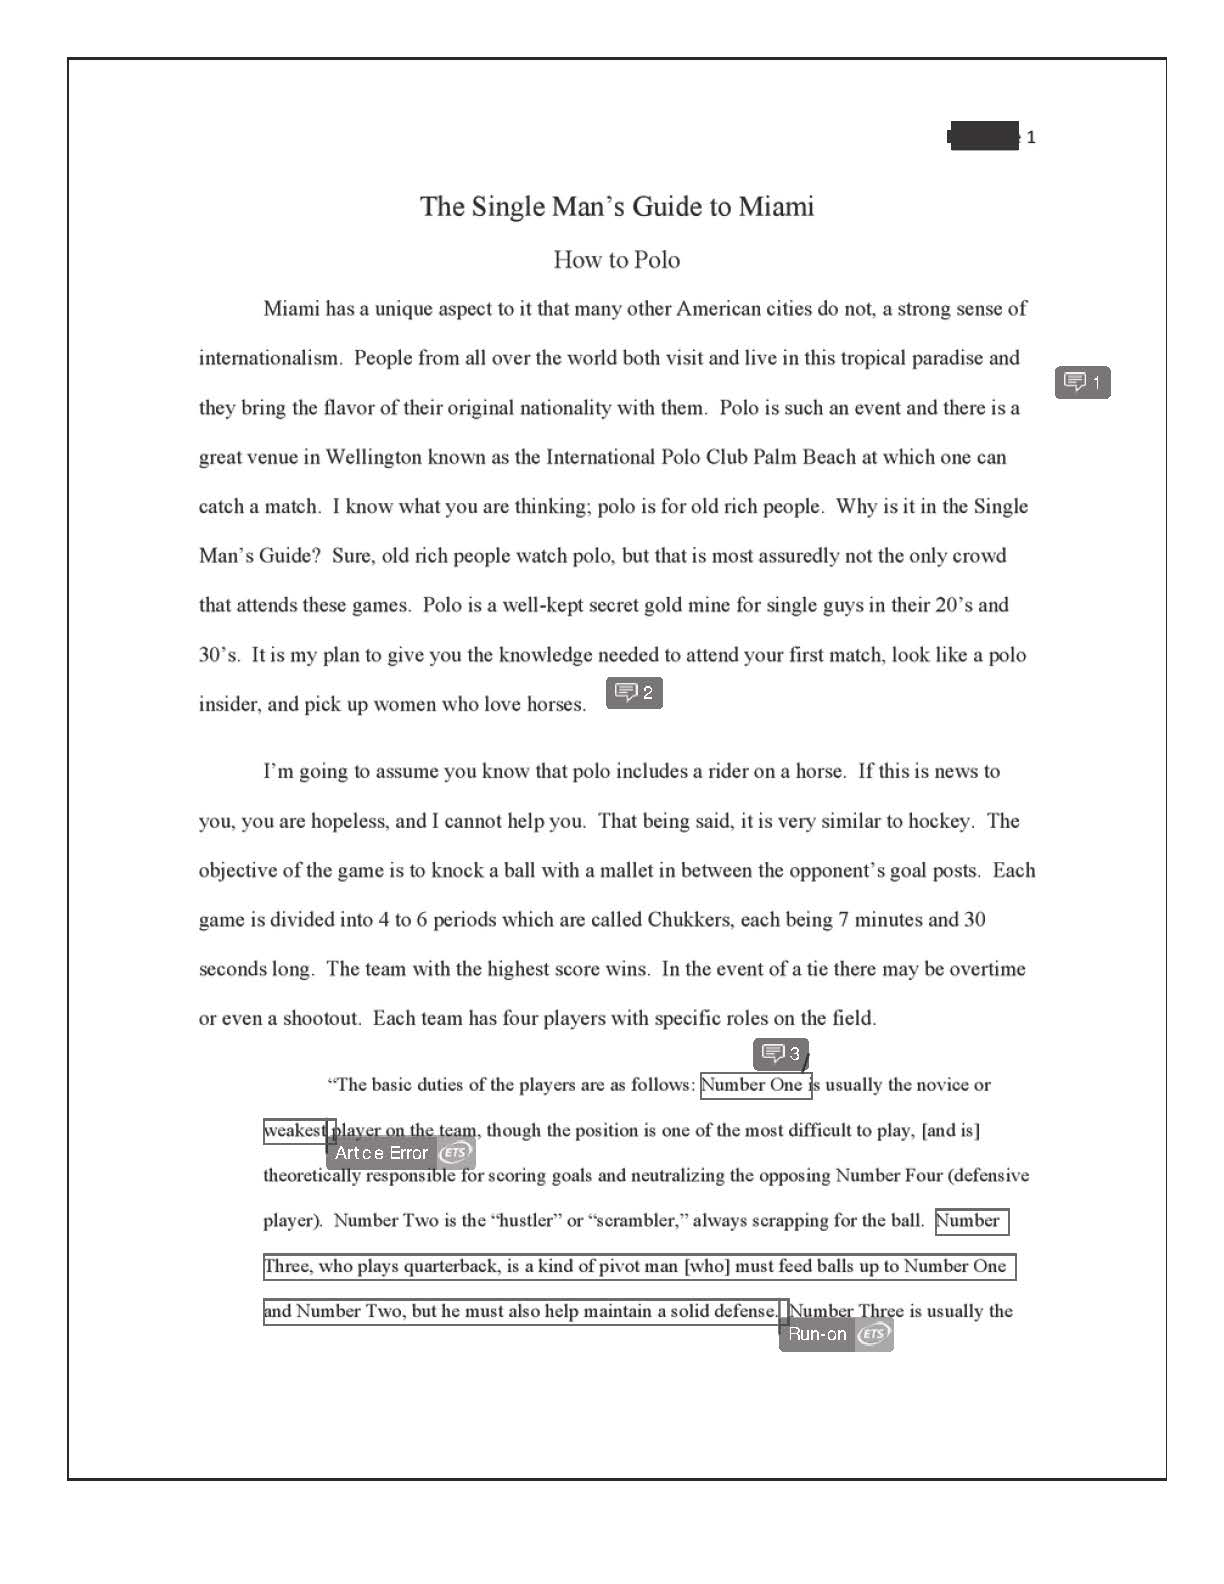 005 Informative Essay Topics Essays Sample Funny Argumentative For Middle School Final How To Polo Redacted P College Students Hilarious Good Remarkable High 4th Grade Expository